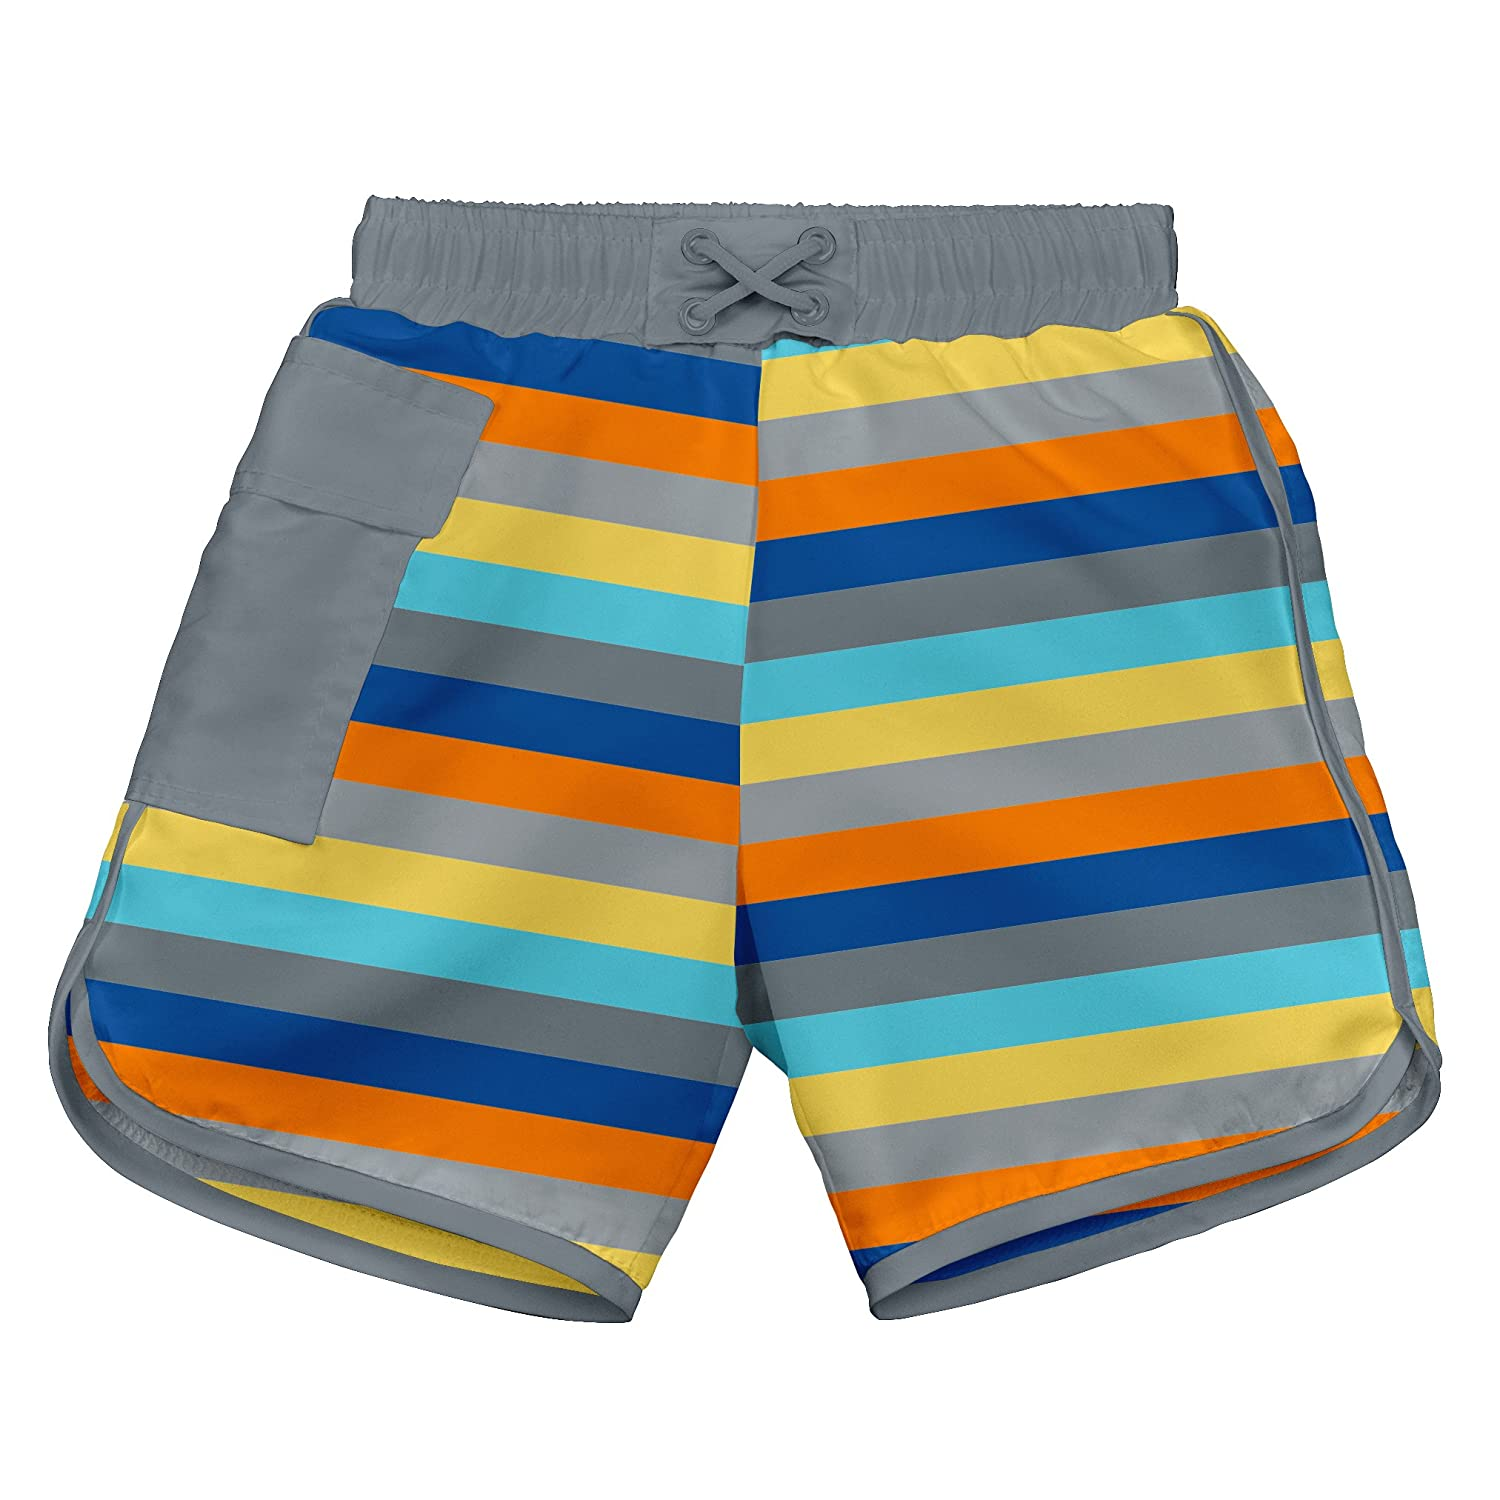 i play. Baby Boys' Striped Pocket Pocket Board Shorts with Built-In Swim Diaper, Gray/Stripe, 6 Months i play Children' s Apparel 722187-614-43